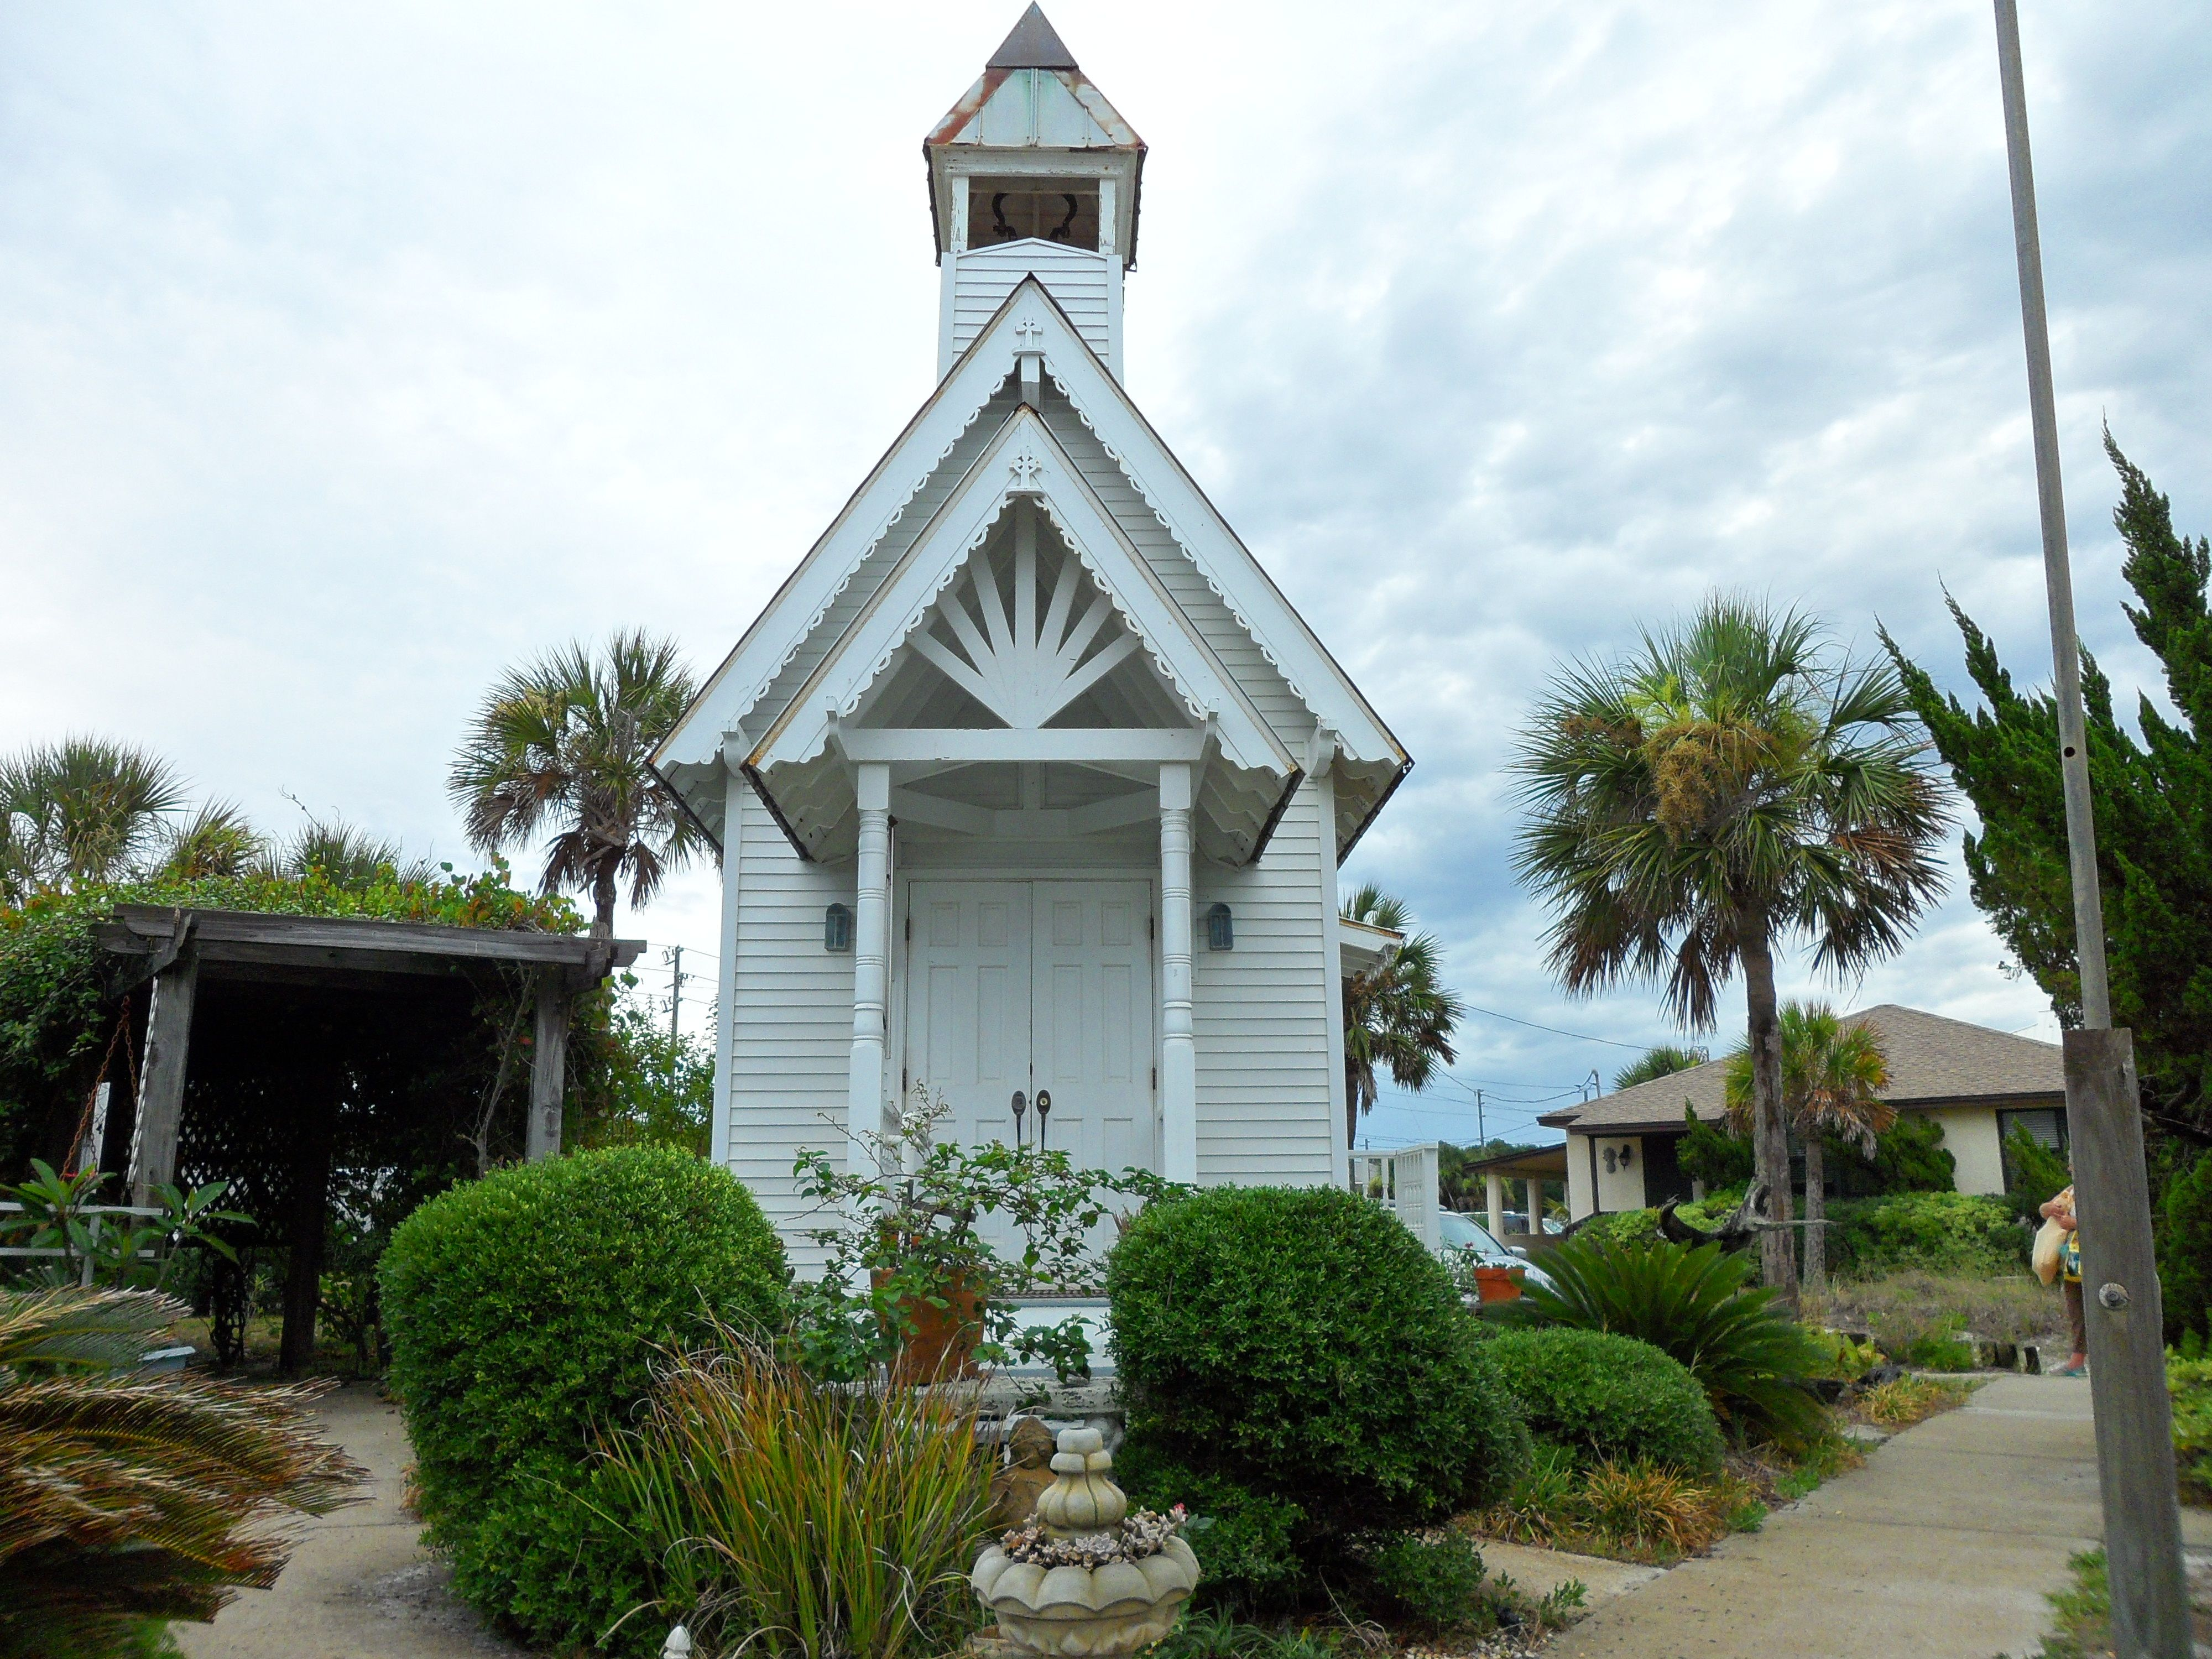 Mexico Beach Fl Wedding Chapel Florida Beaches Apalachicola